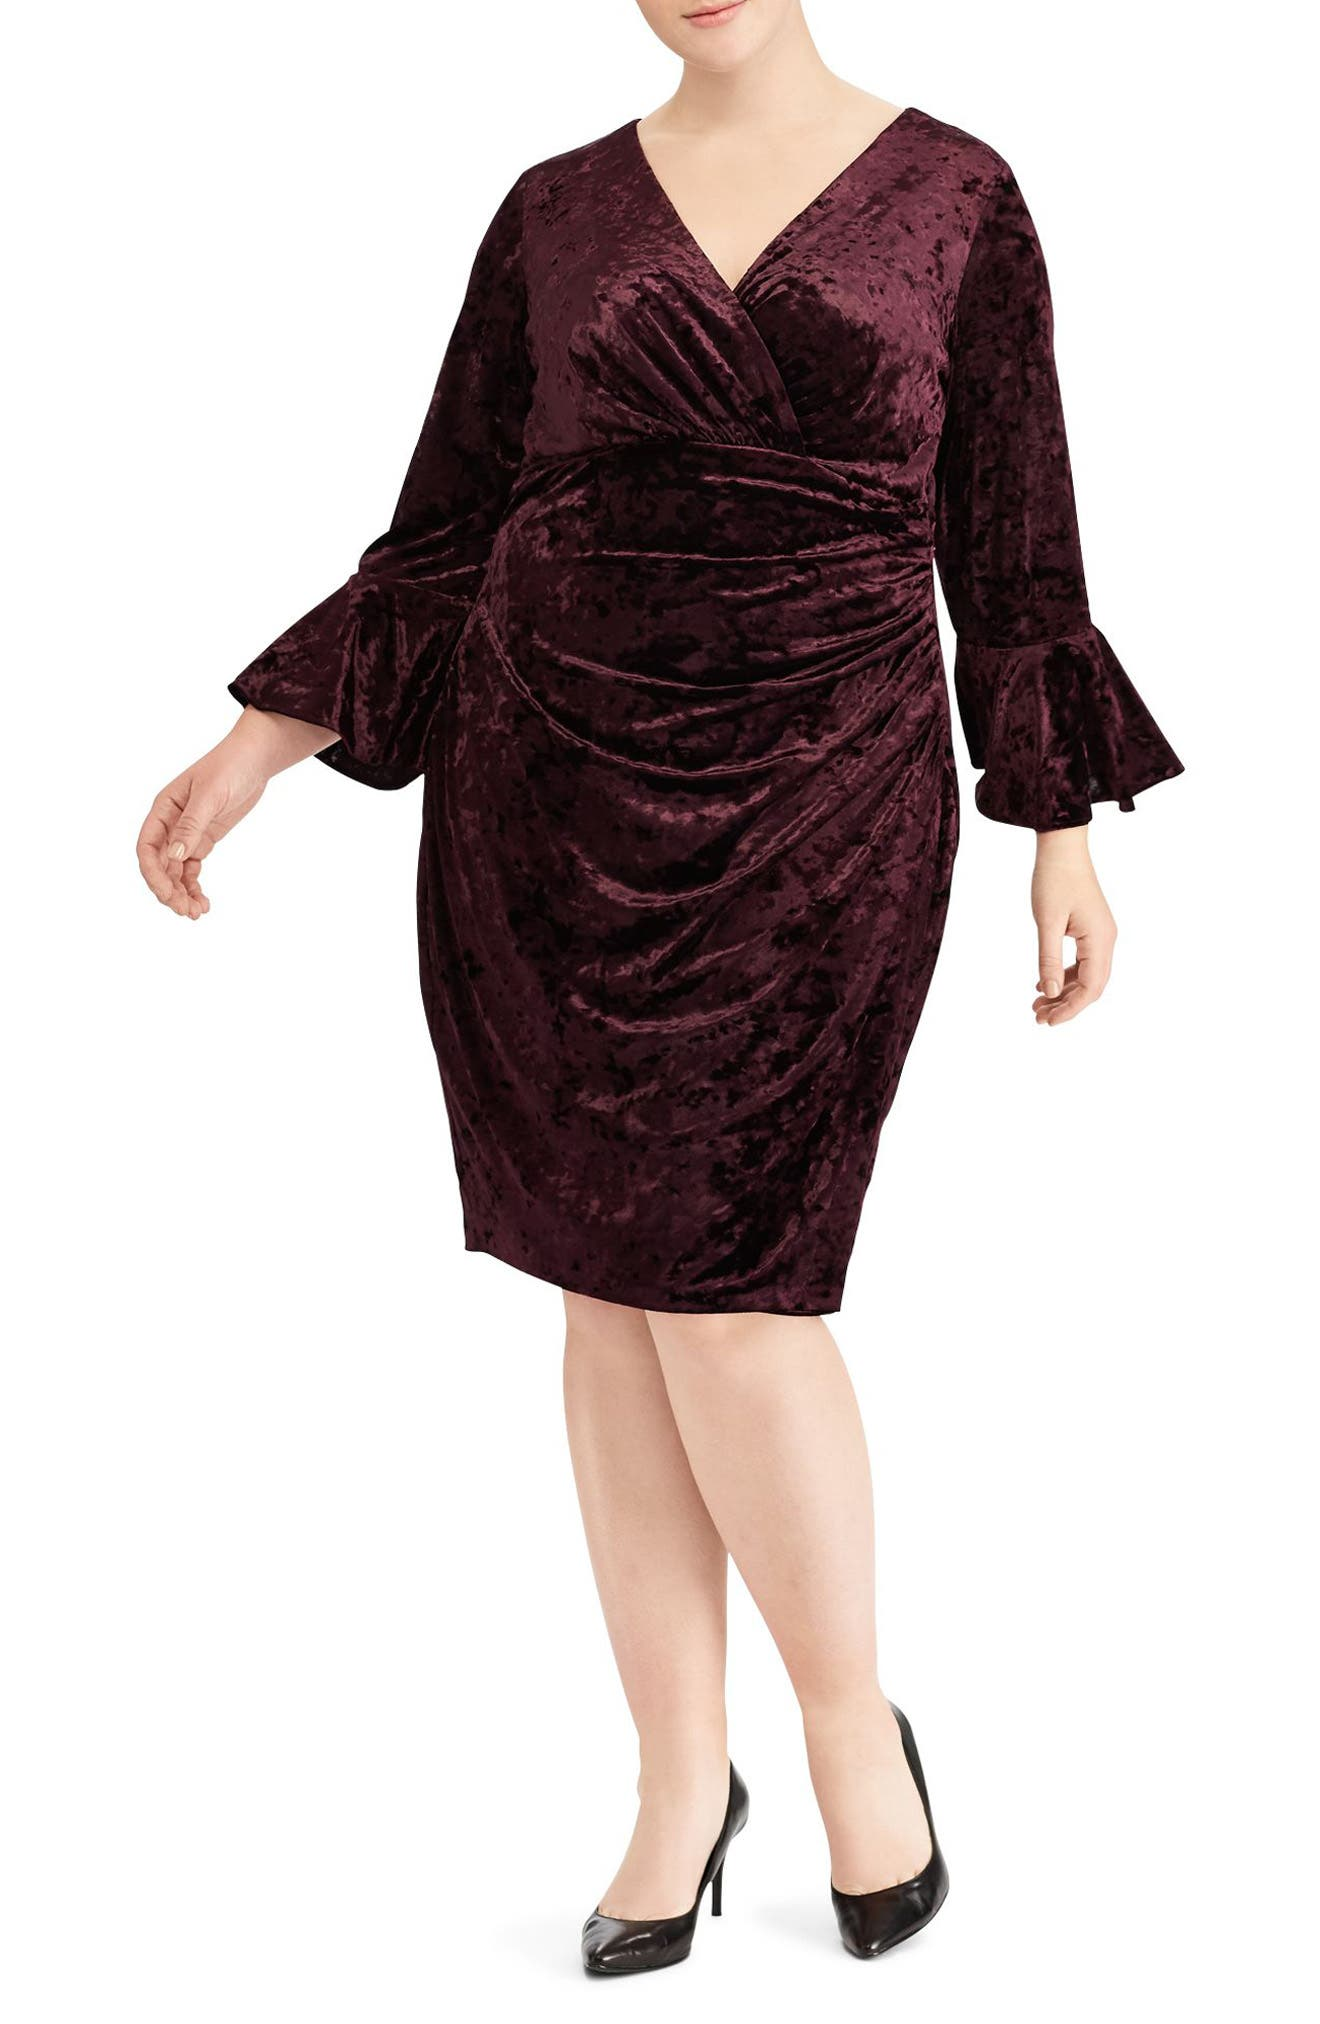 Ruched Crushed Velvet Sheath Dress,                             Main thumbnail 1, color,                             600